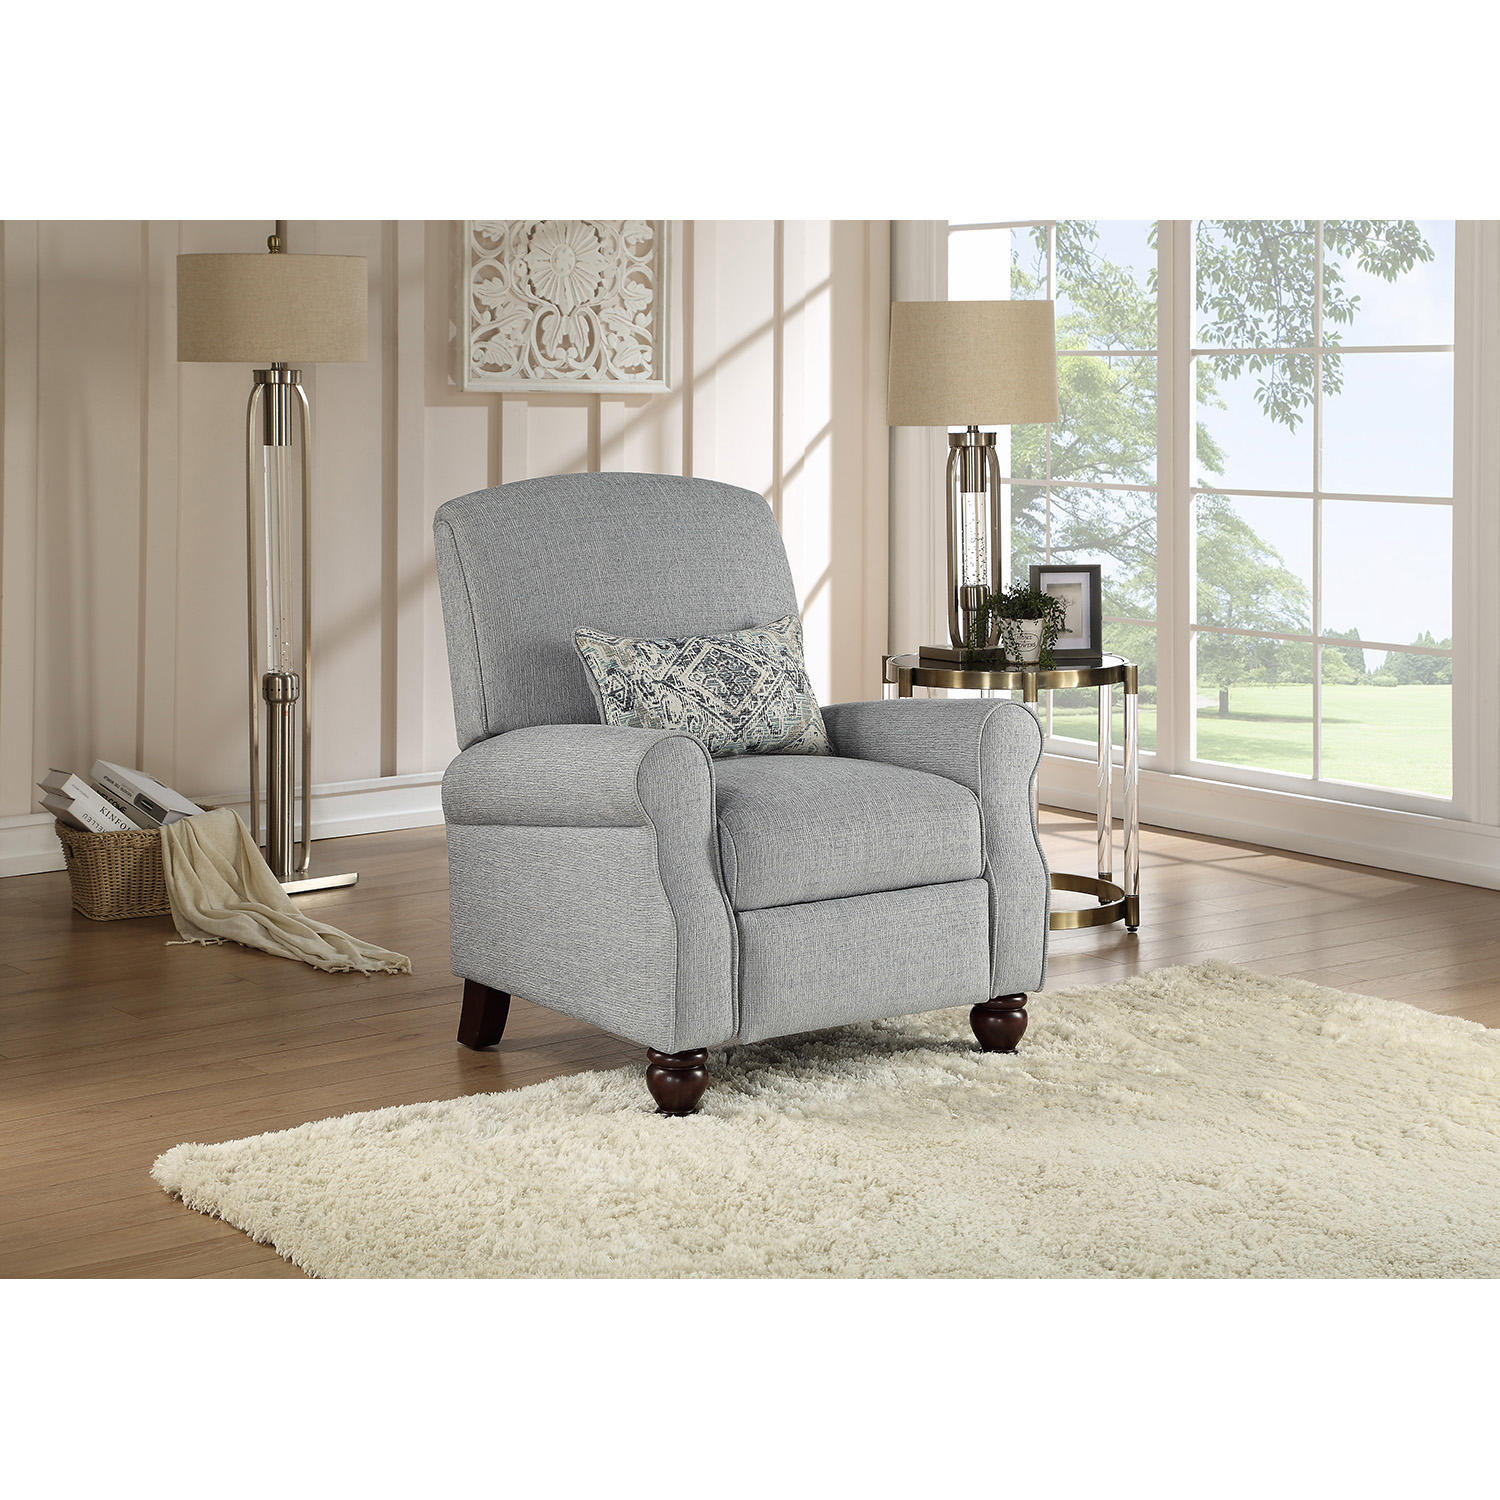 Albany Industries Harper Pushback Recliner